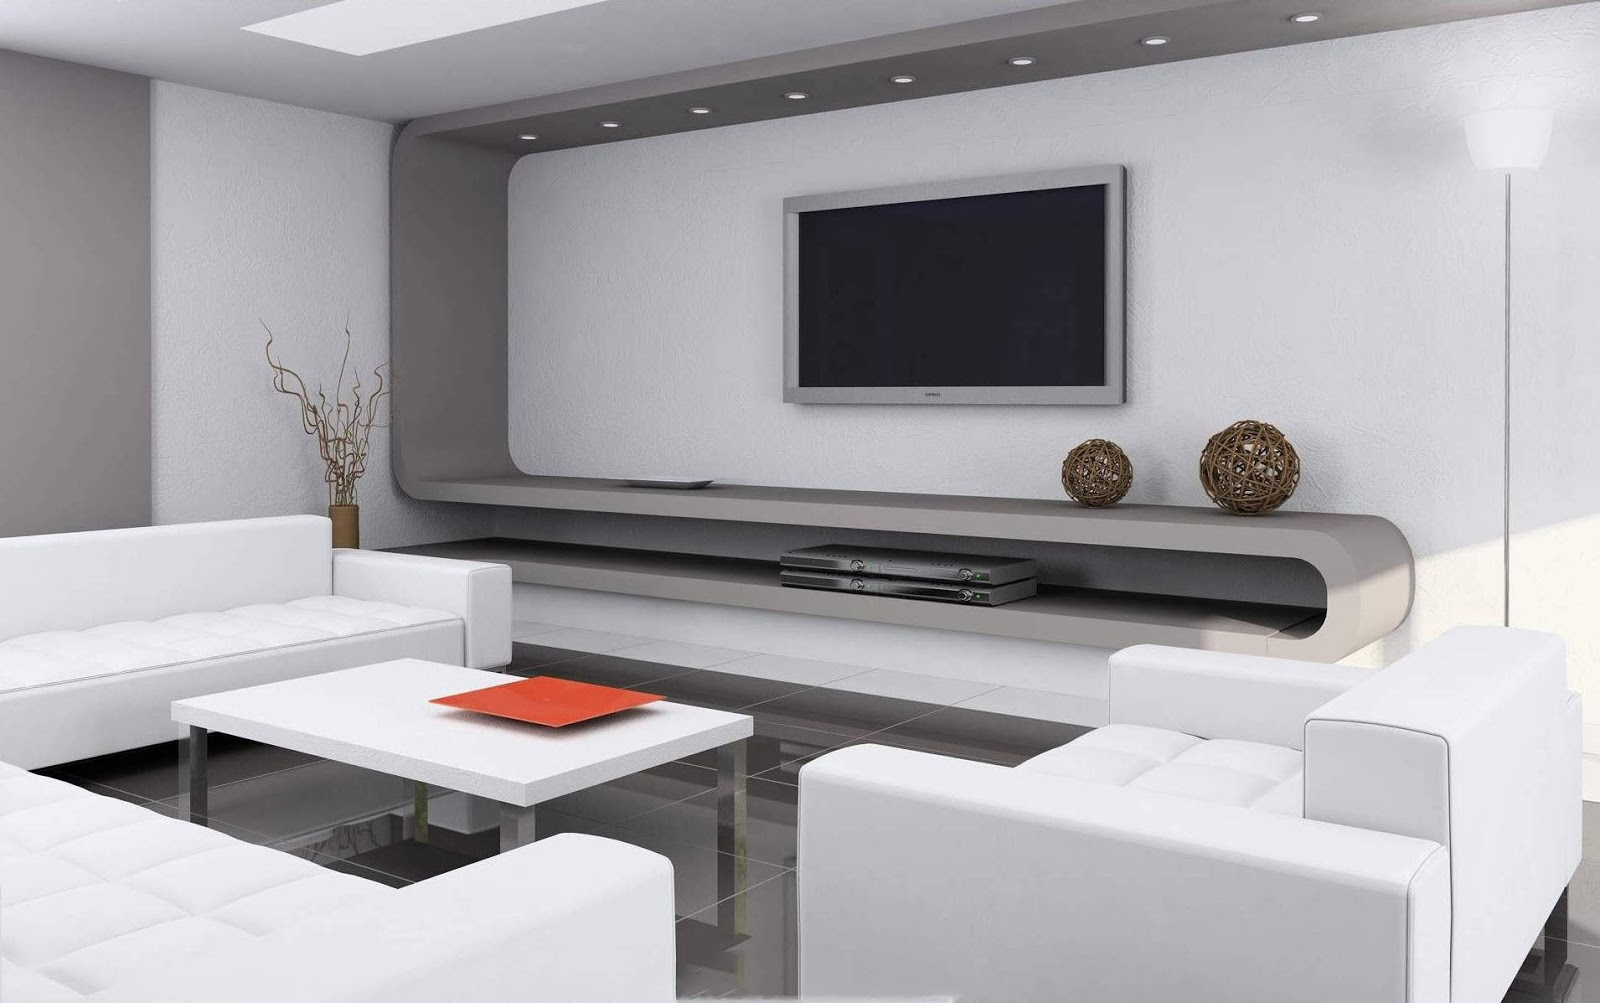 Tv wall decoration living room 2014 part 2 · how